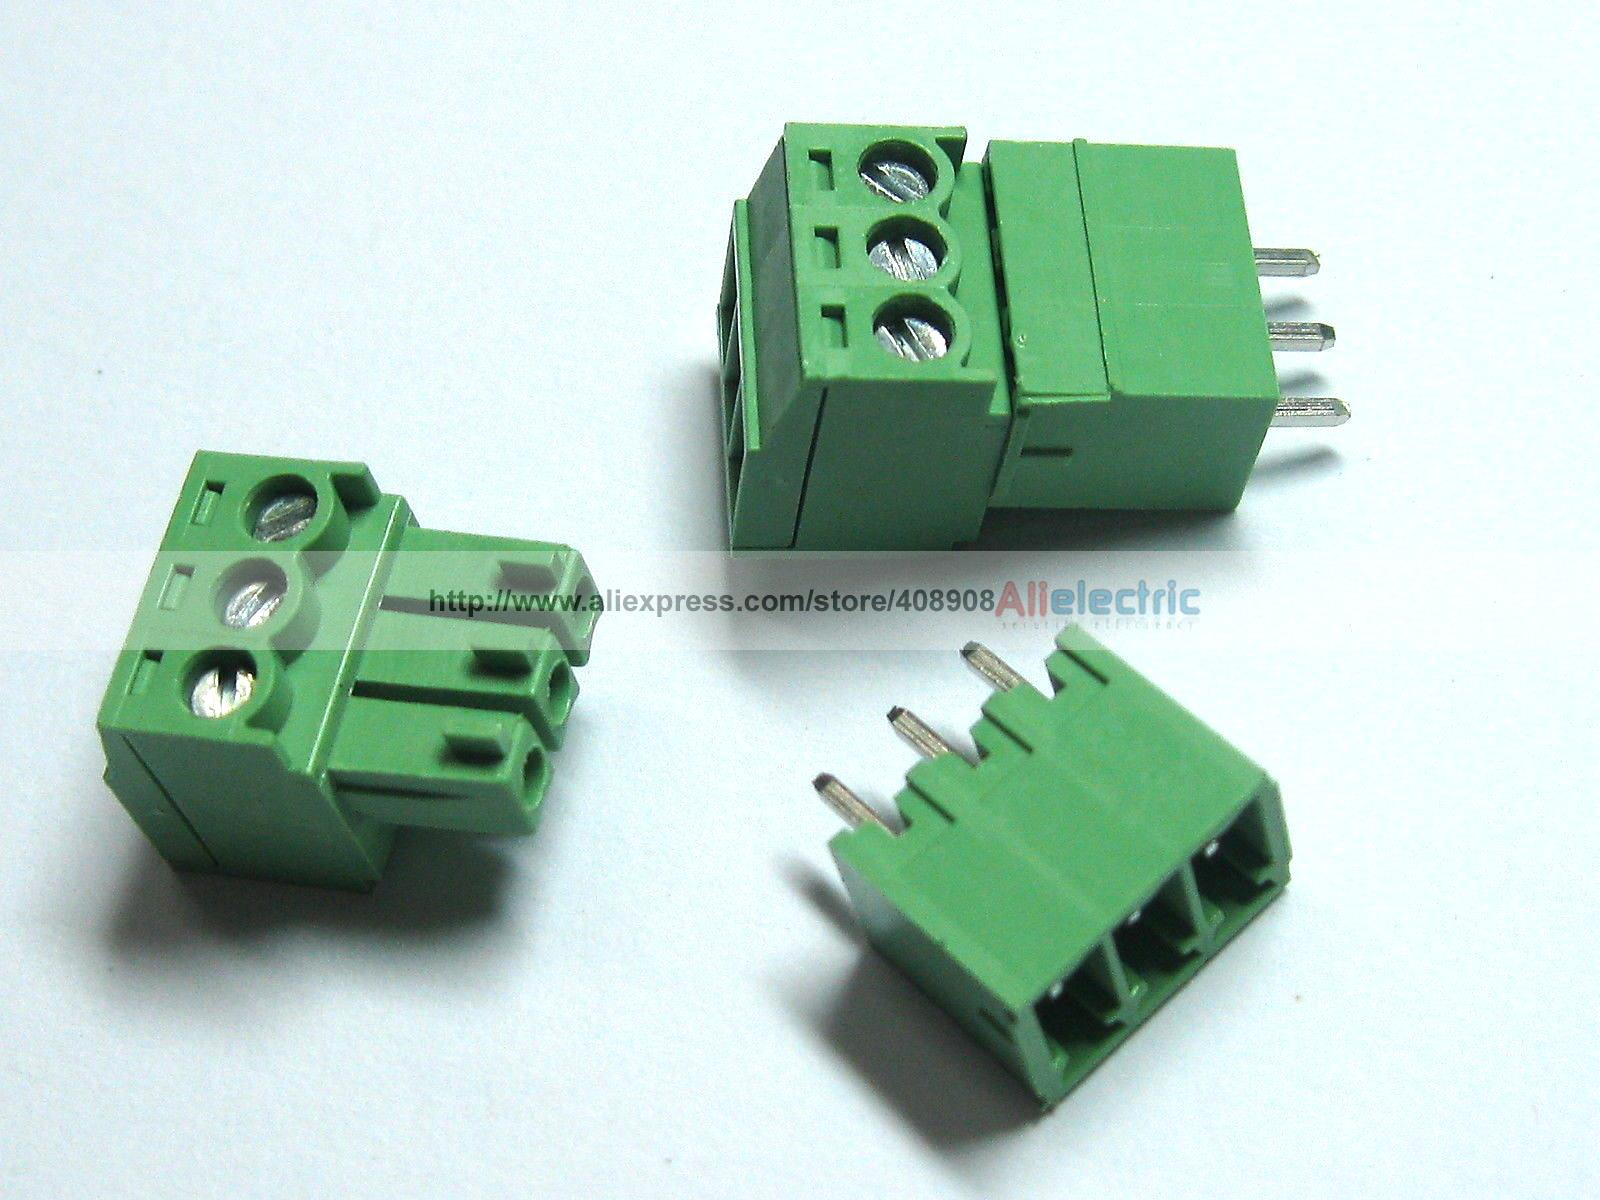 150 Pcs Screw Terminal Block Connector 3.5mm 3 Pin Way Green Pluggable Type 30 pcs screw terminal block connector 3 81mm 12 pin green pluggable type